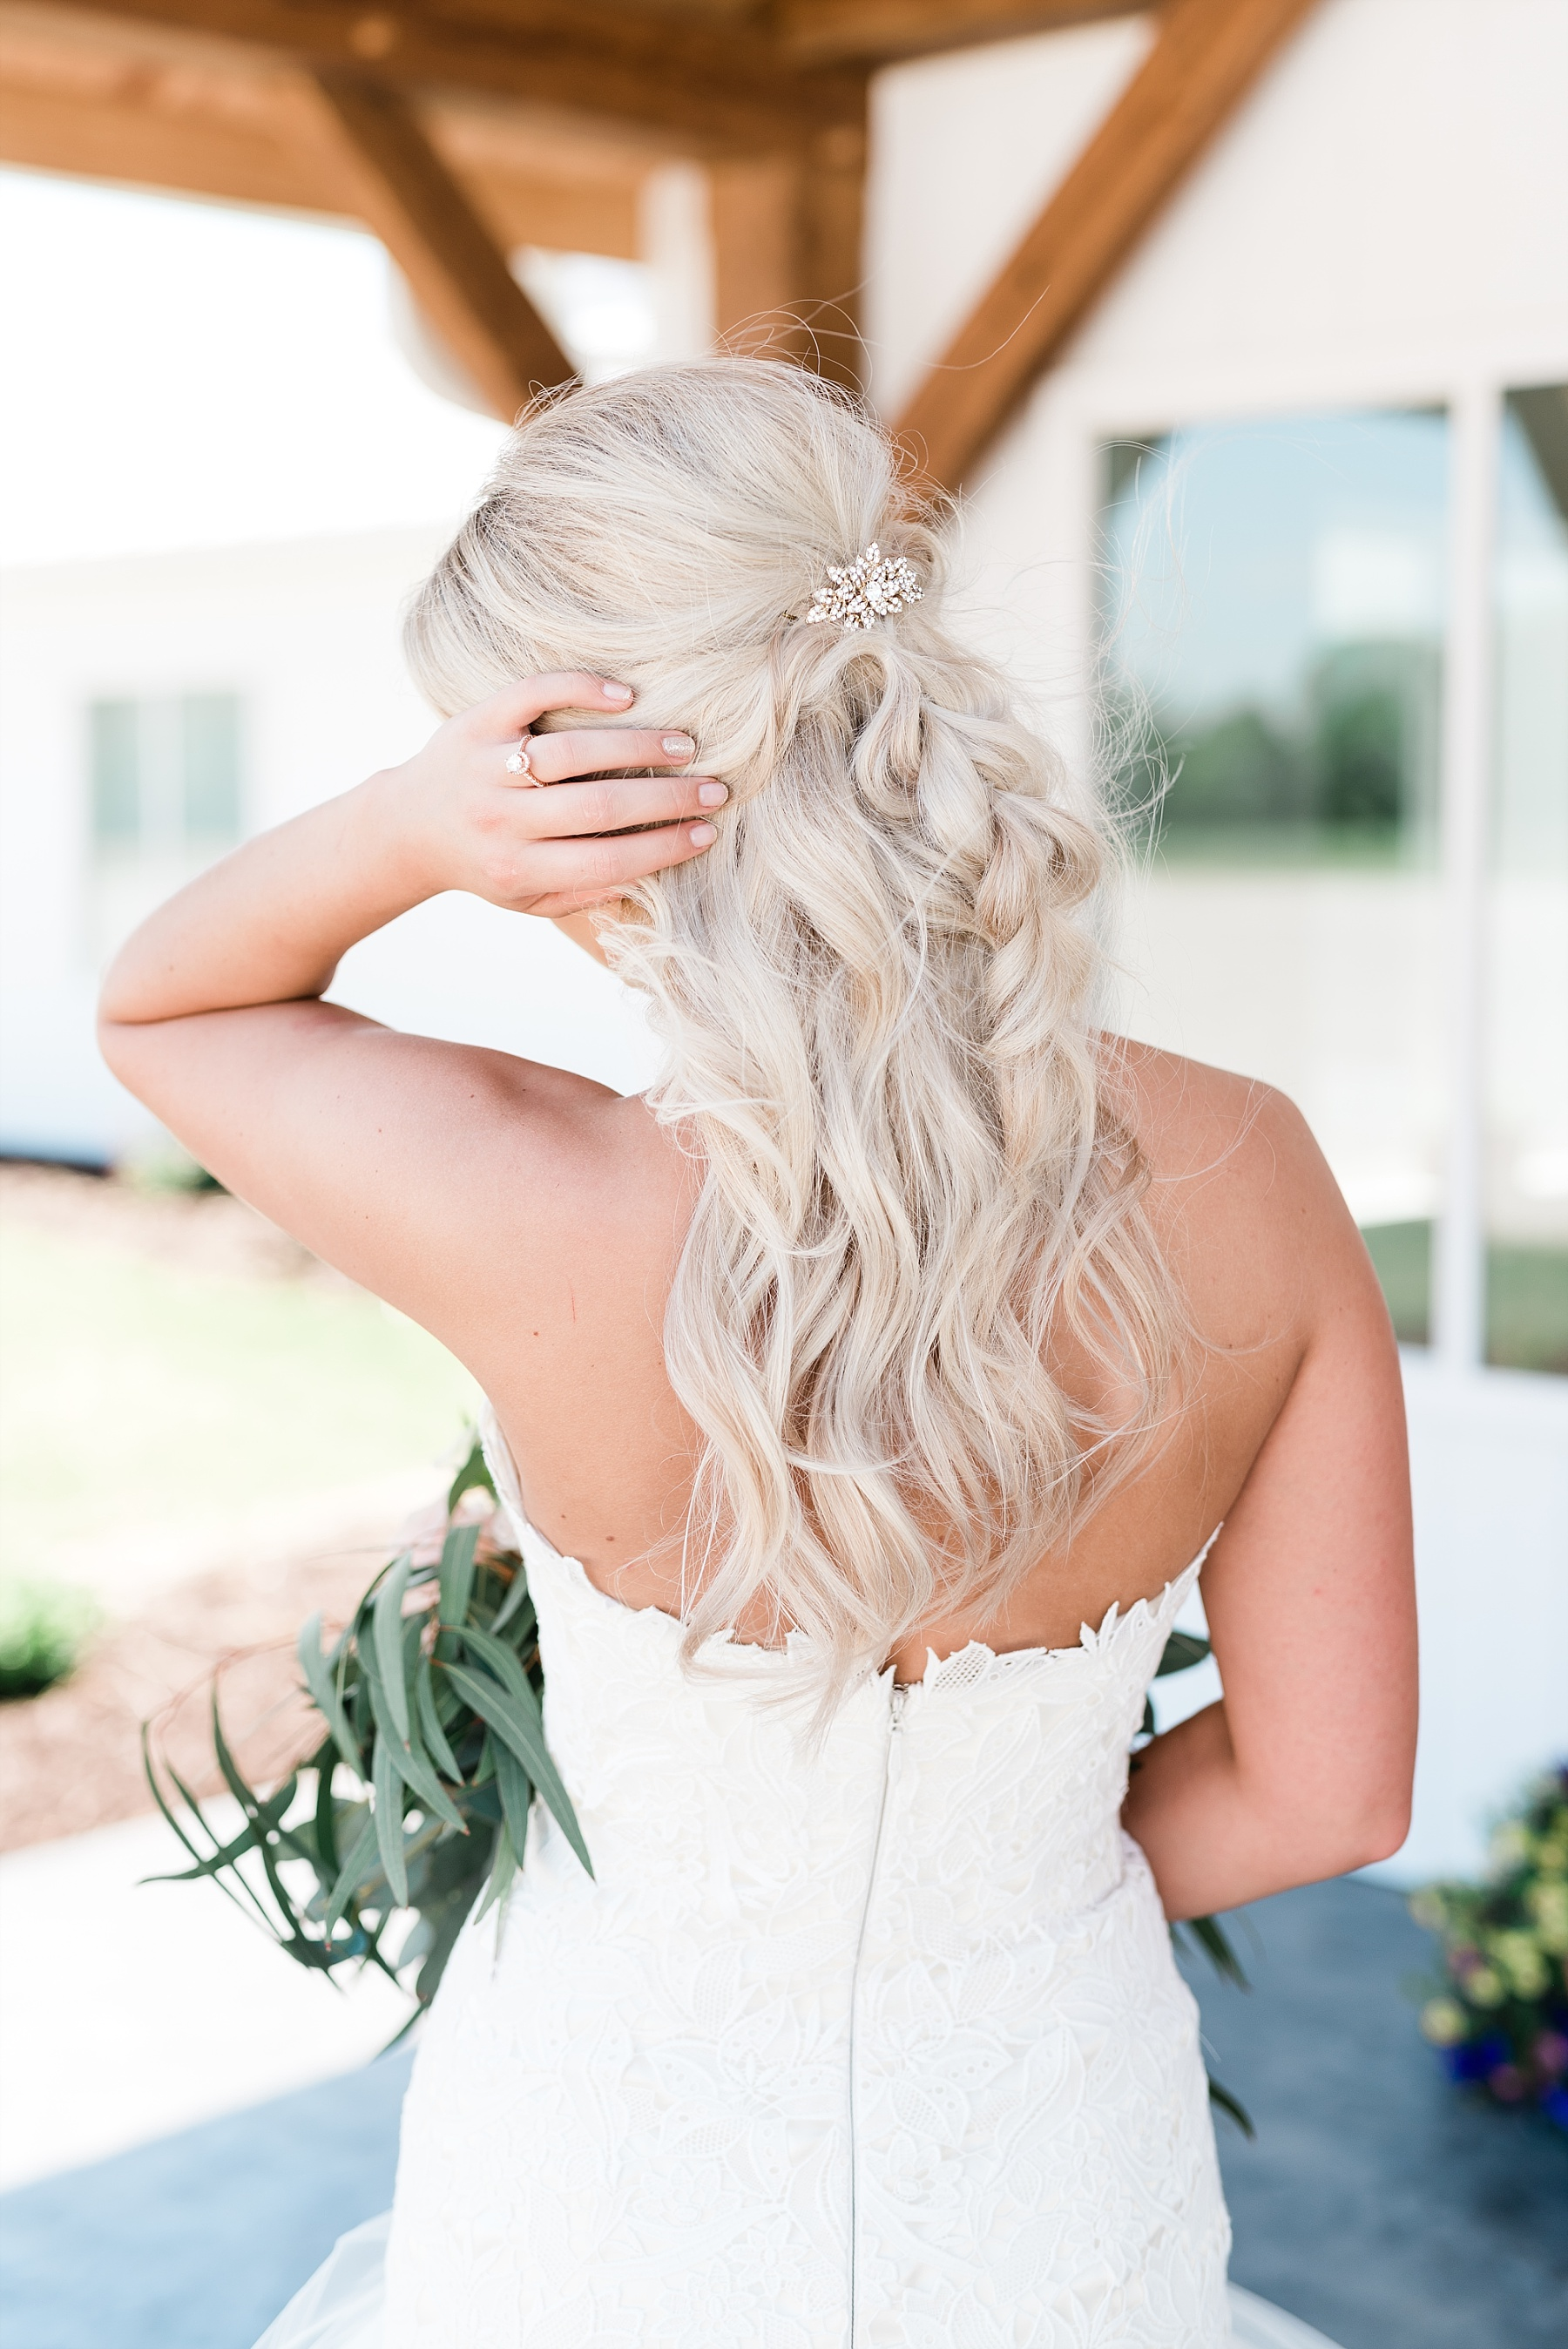 Stunning Heartfelt, Elegant, Fine Art, Chic, Outdoor Spring Wedding with Blush, Cream, Greenery, Rose Gold, and Sequins at Emerson Fields Venue by Kelsi Kliethermes Photography_0018.jpg